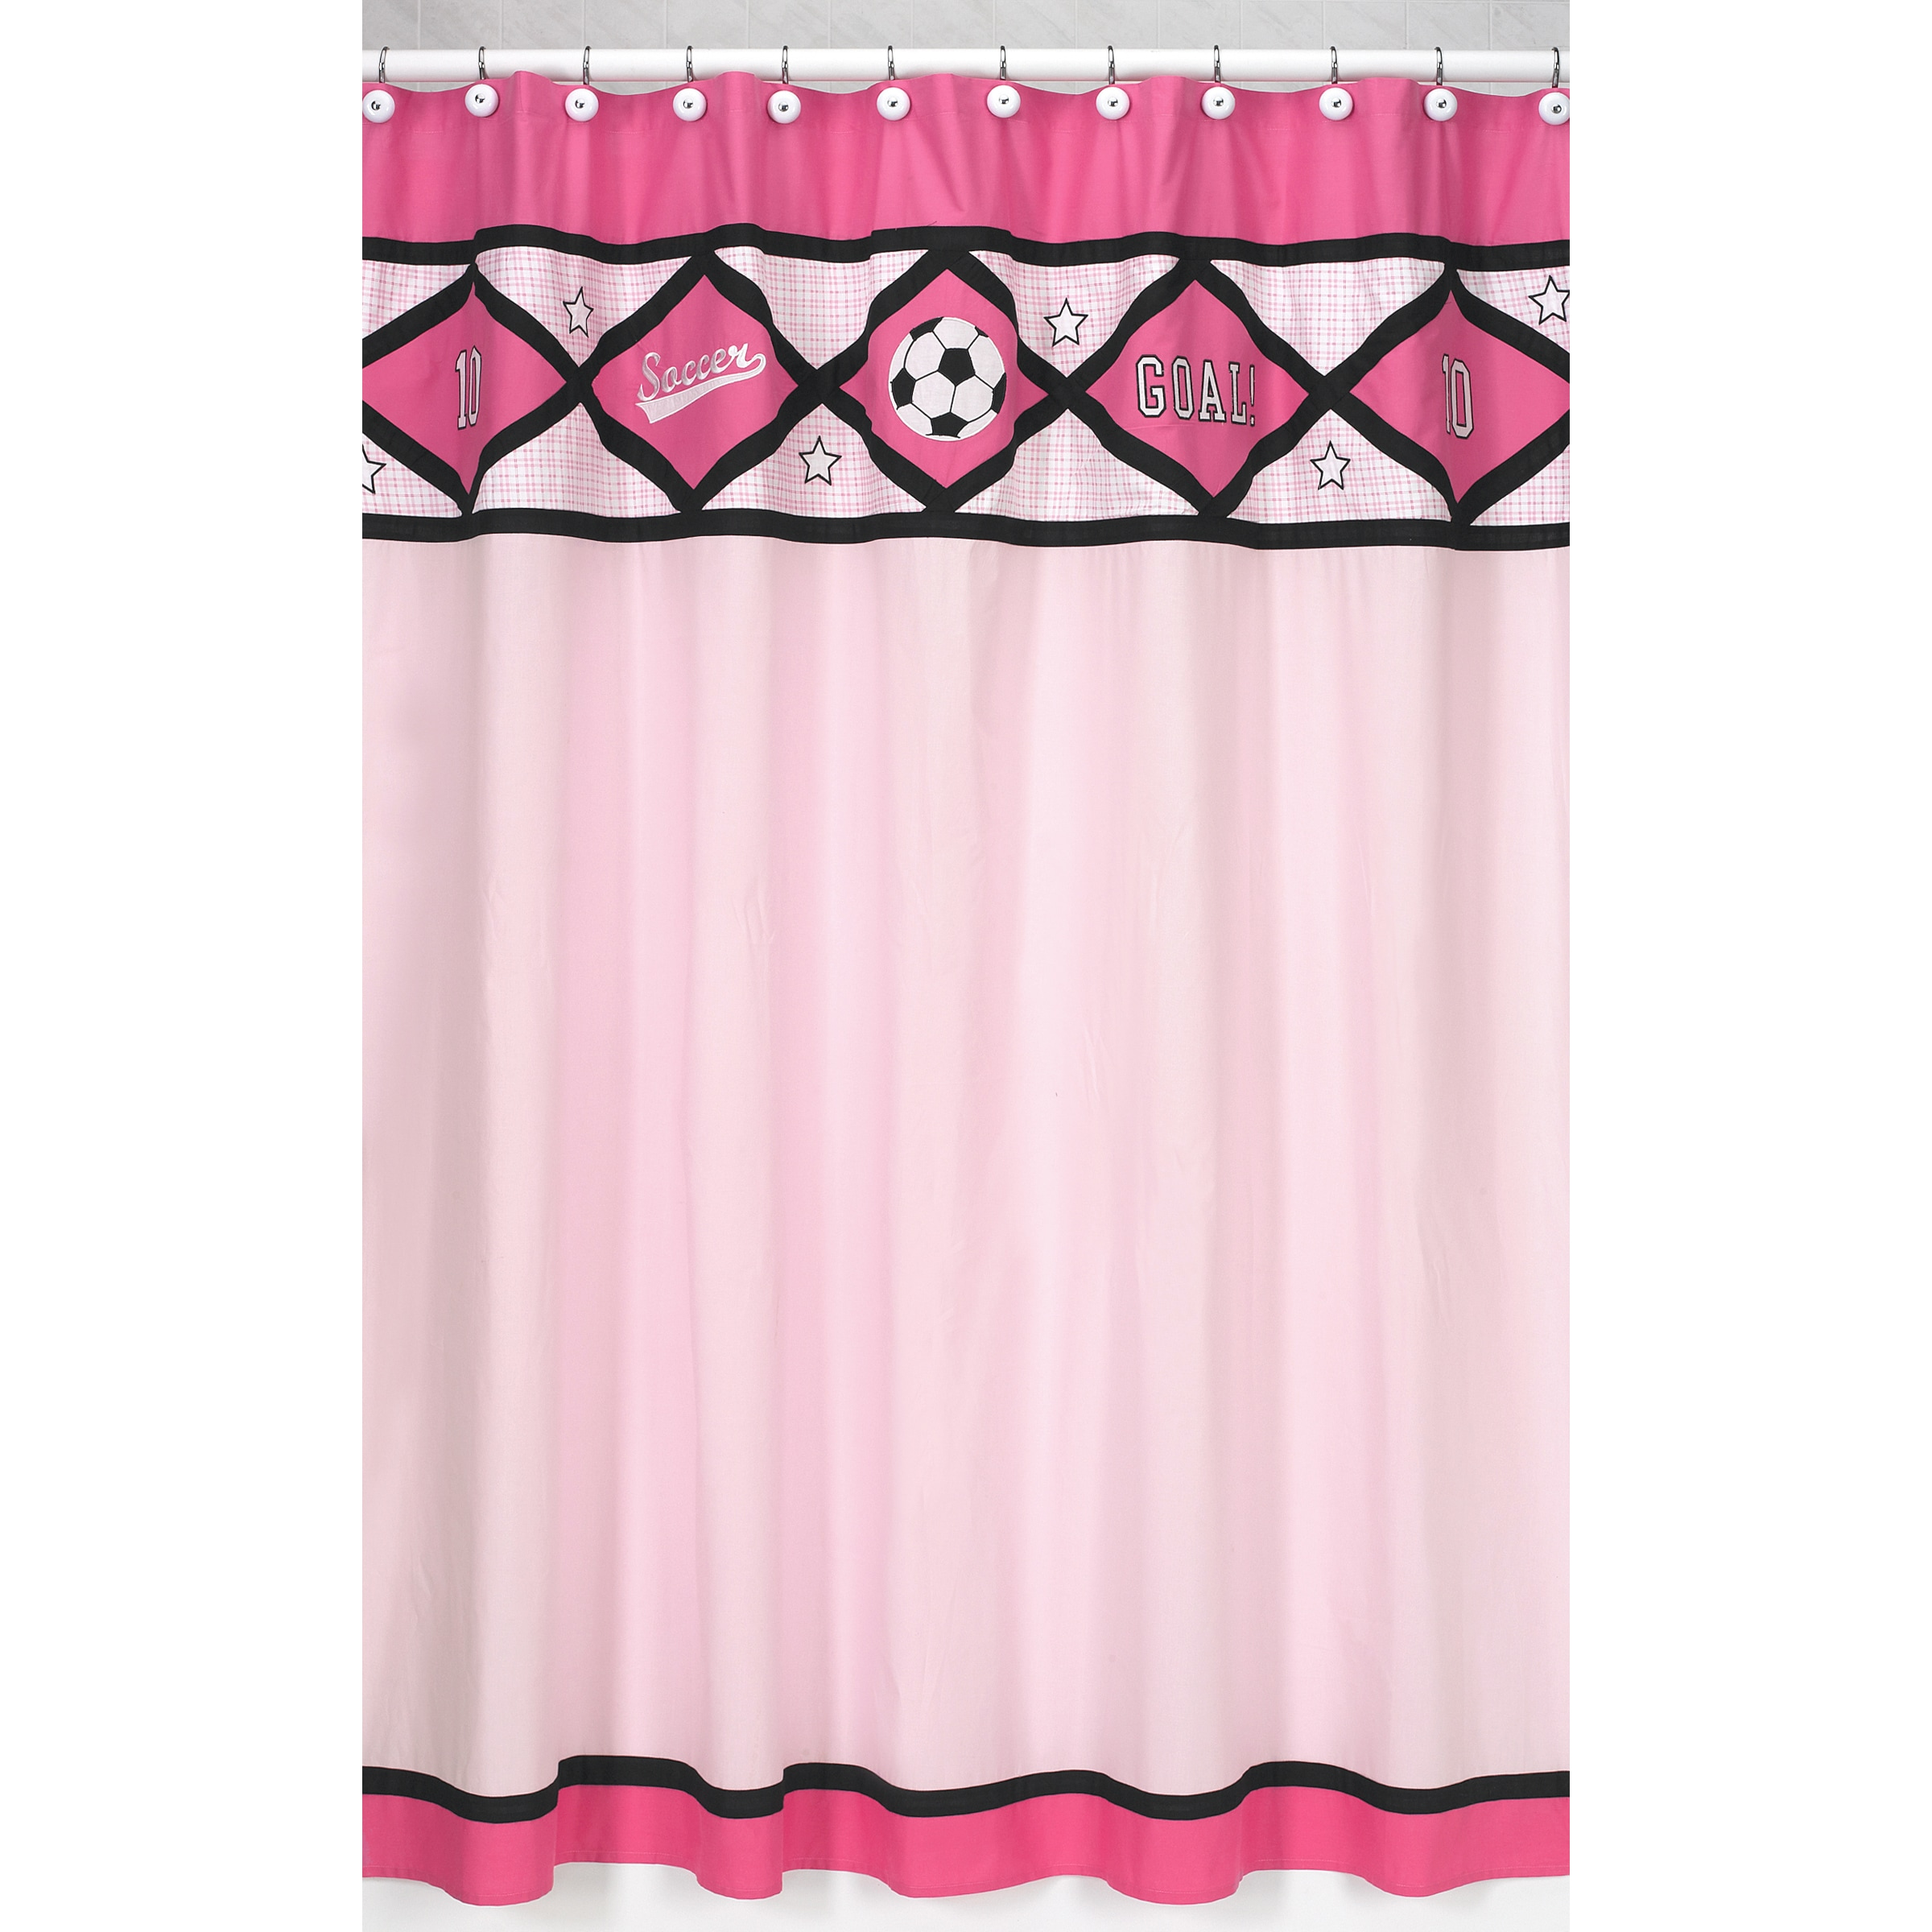 Sweet Jojo Designs Pink Soccer Kids Shower Curtain at Sears.com